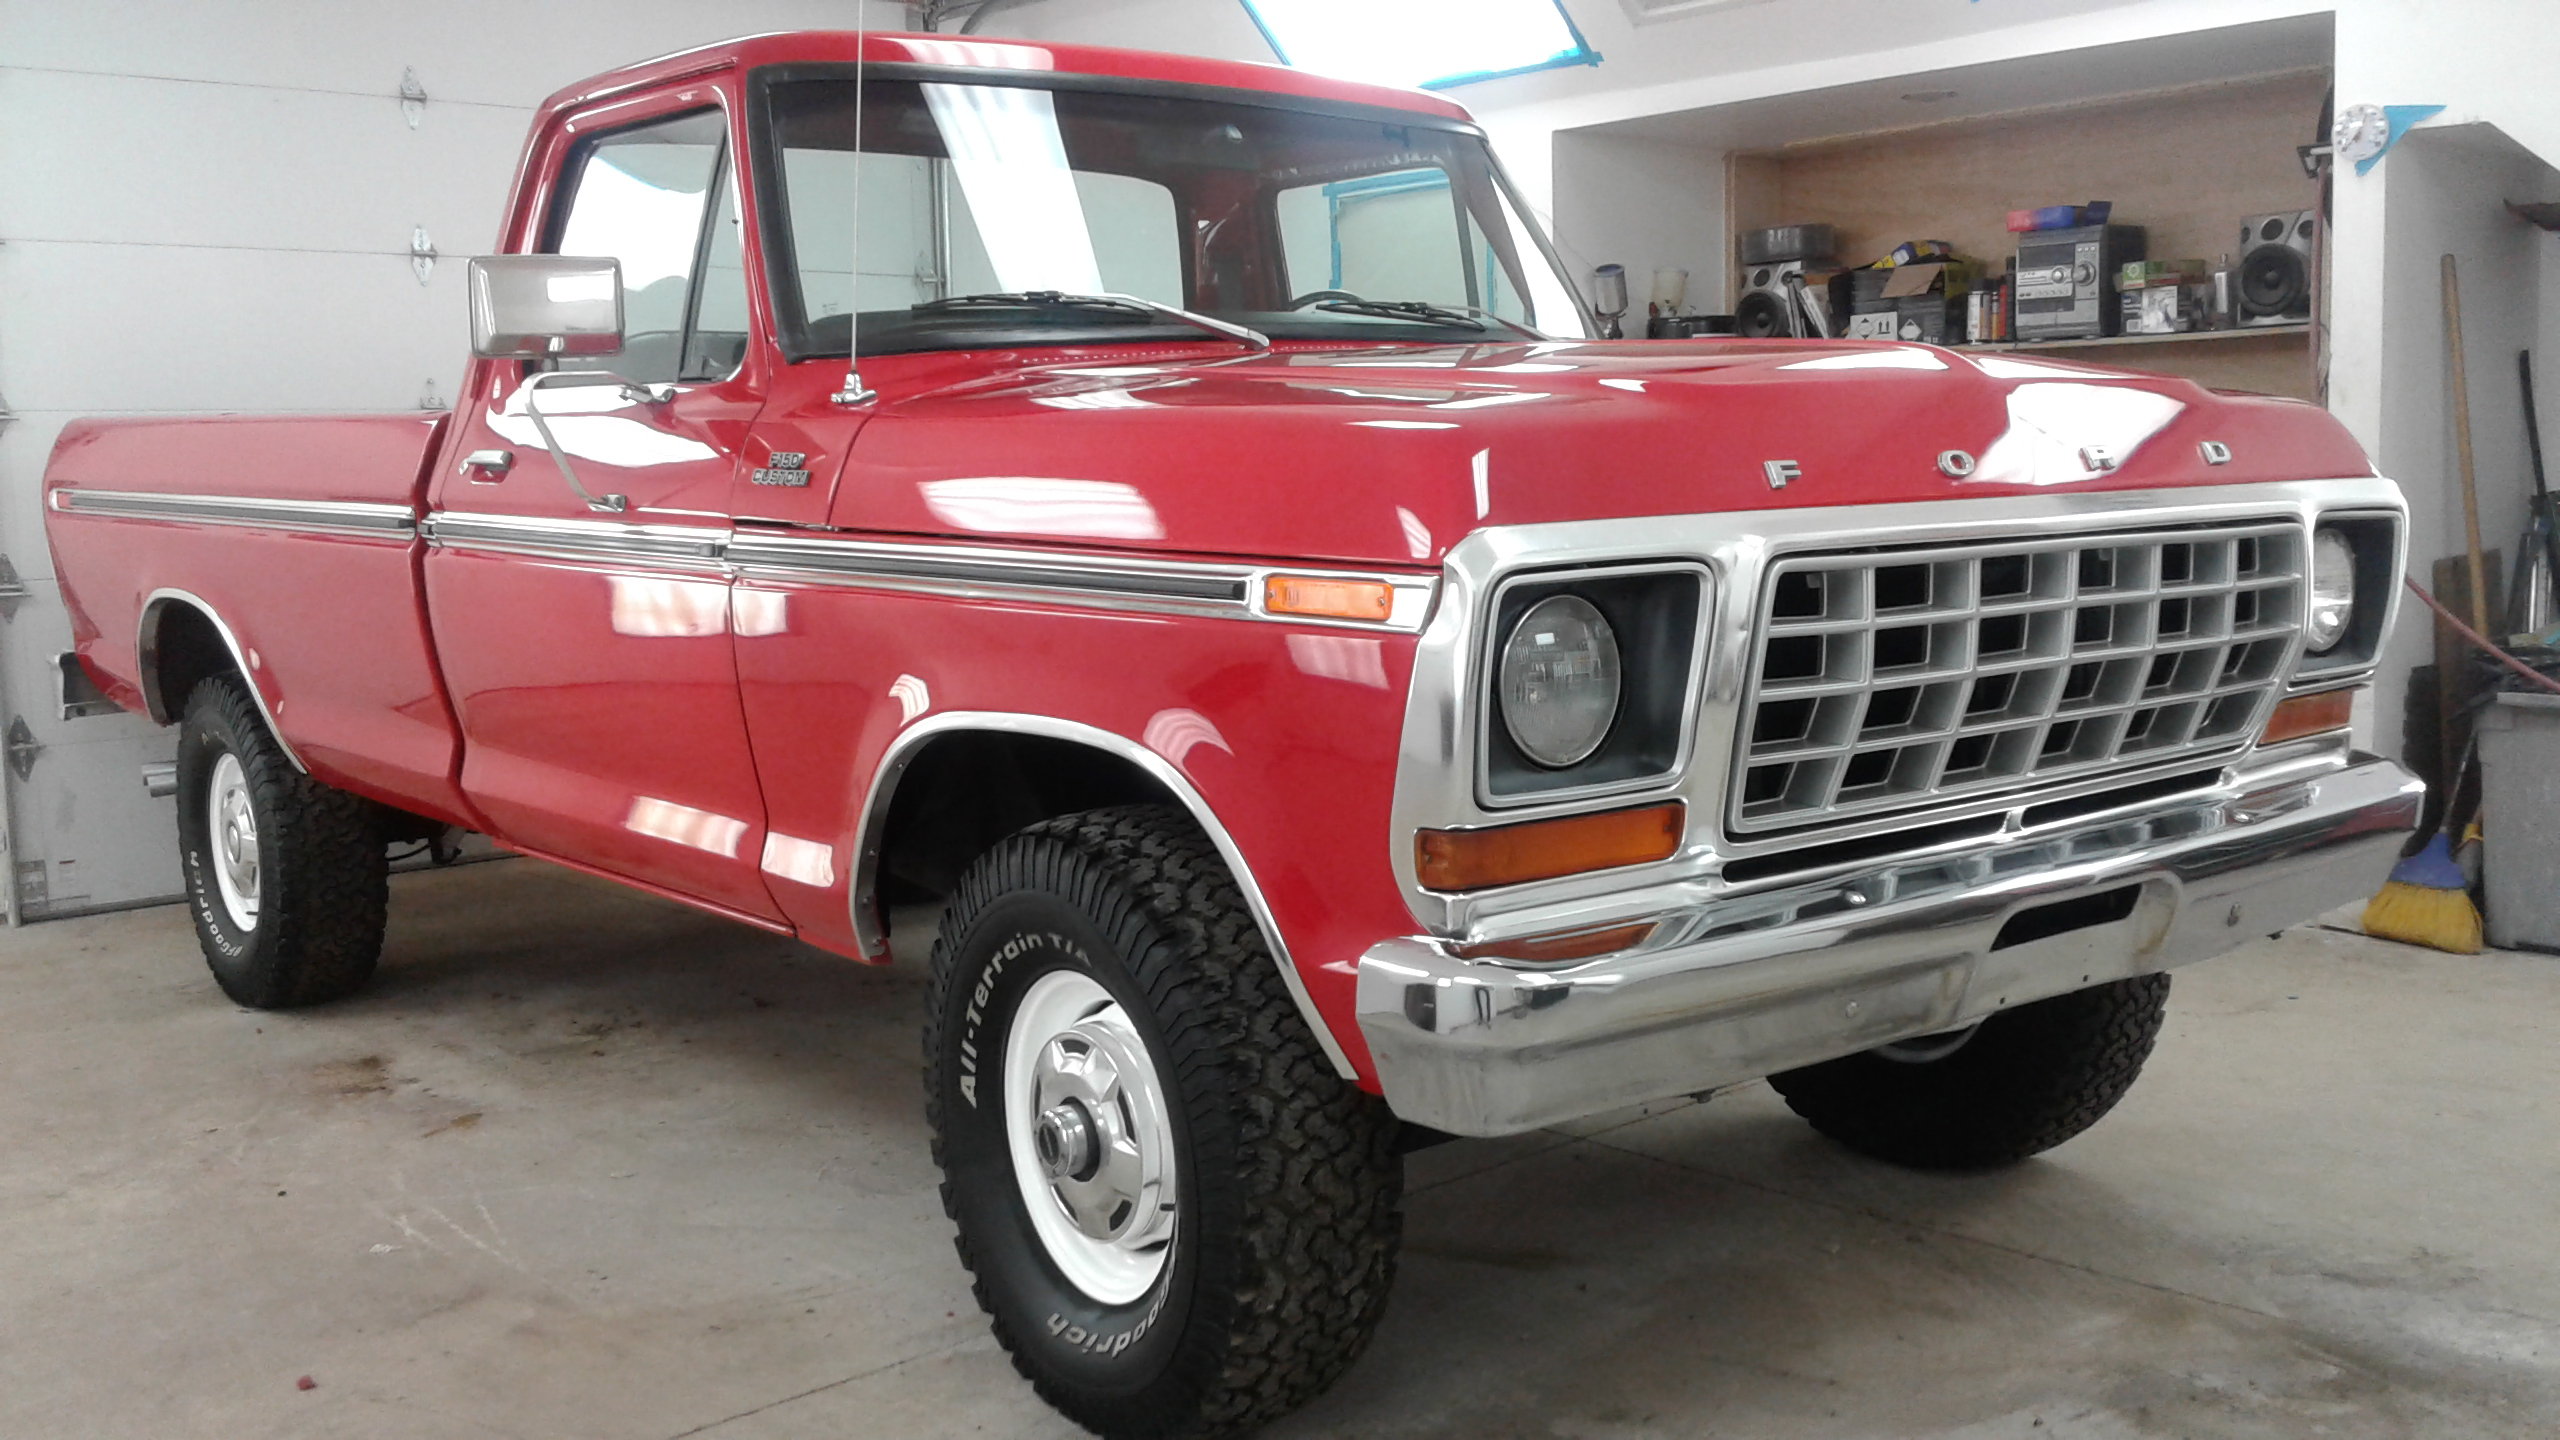 1978 Ford F-150 4x4 red